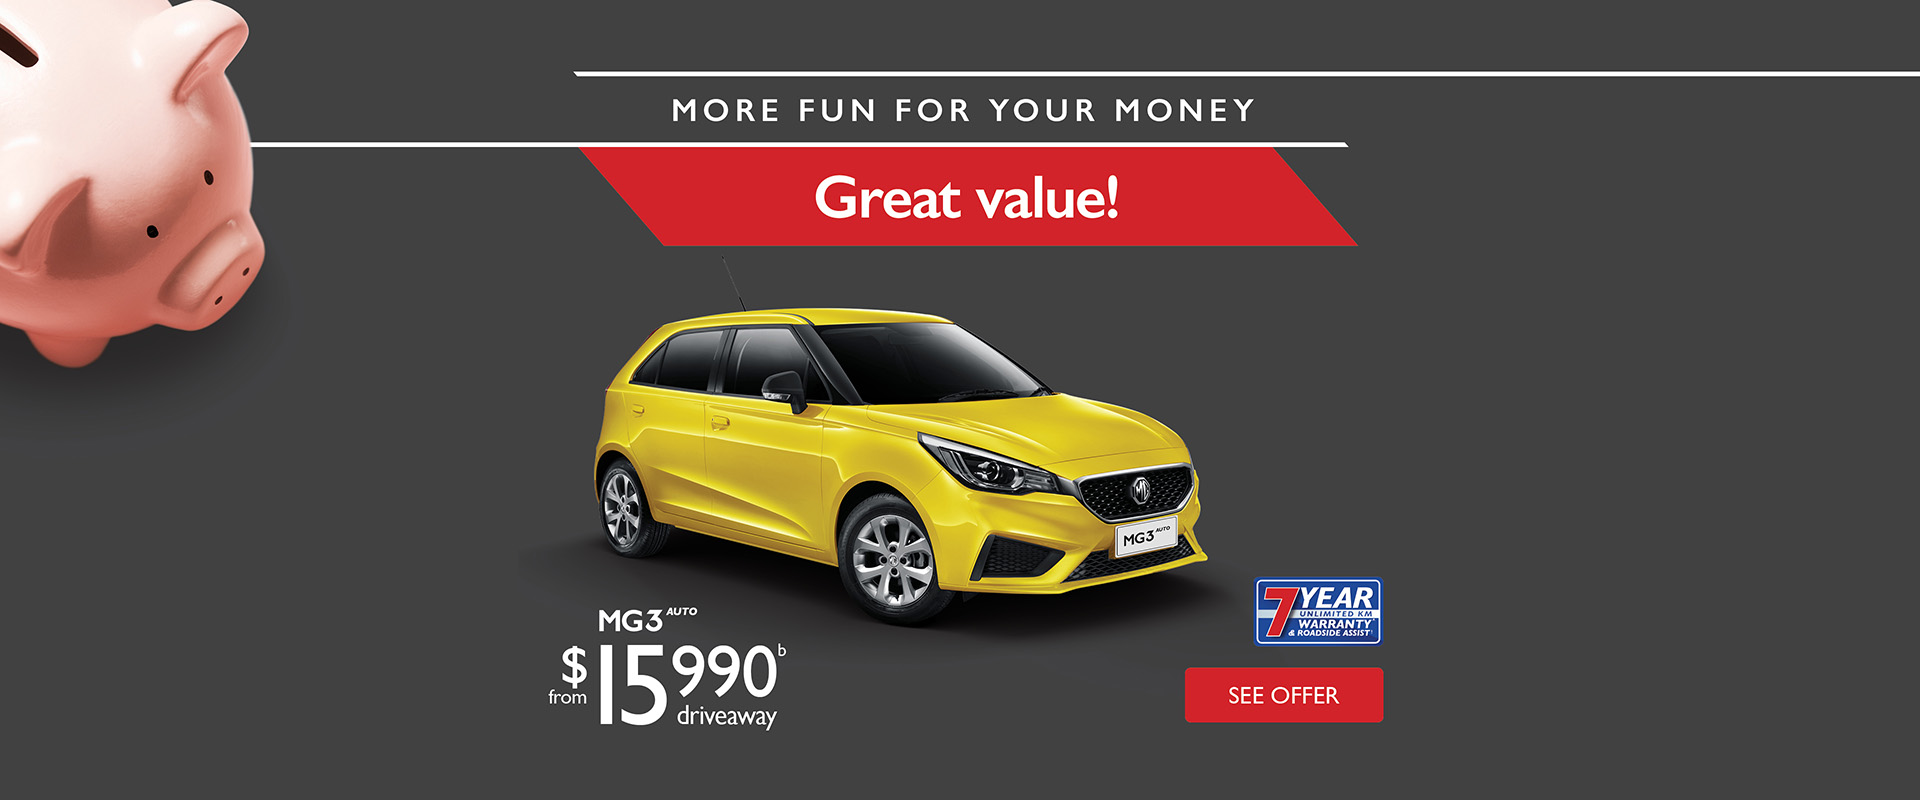 MG3 - More Fun For Your Money